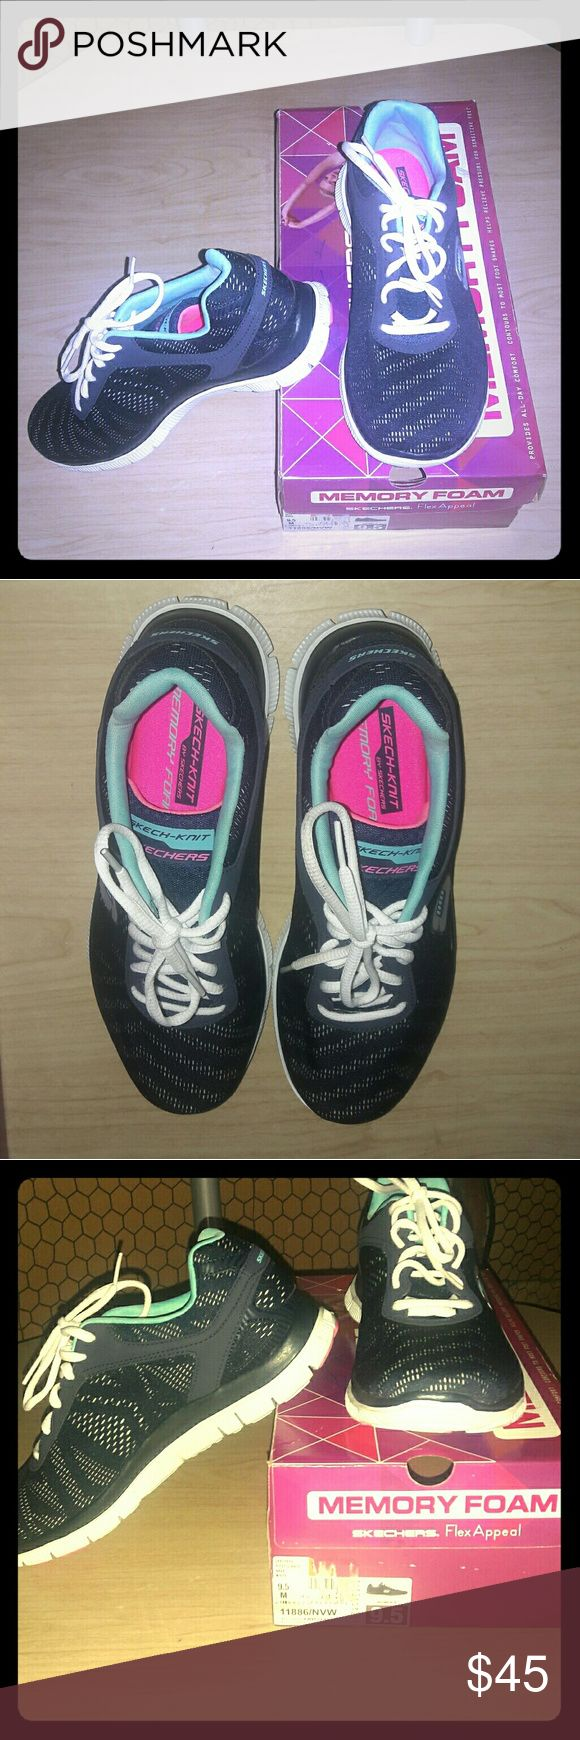 """NIB Skechers Memory Foam Sneakers. Size: 9.5 + Surprise freebies with every purchase + NIB New and never worn. Skechers brand """" First Glance"""" Memory Foam Sneakers in navy and white with magenta inside. Padded insole with memory foam and mesh textured outsole. Approximately 1-1/4""""H heel. Very comfortable. Women's size: 9.5   * Bundle 2 or more listings and save 15% * Skechers Shoes Sneakers"""